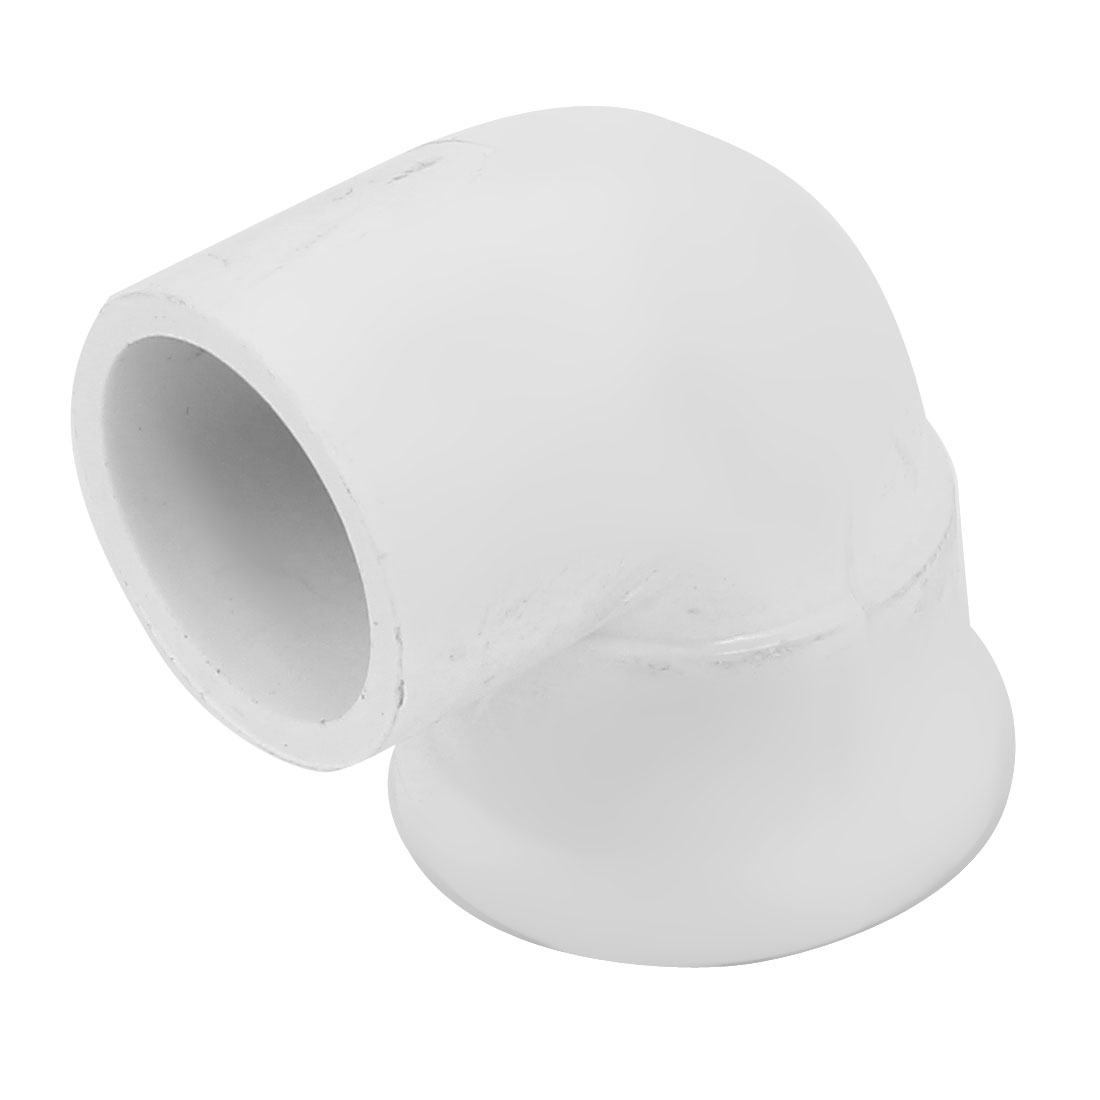 19mm 1/2BSP Female Thread Elbow PVC-U Pipe Tube Connecting Fitting Coupler White